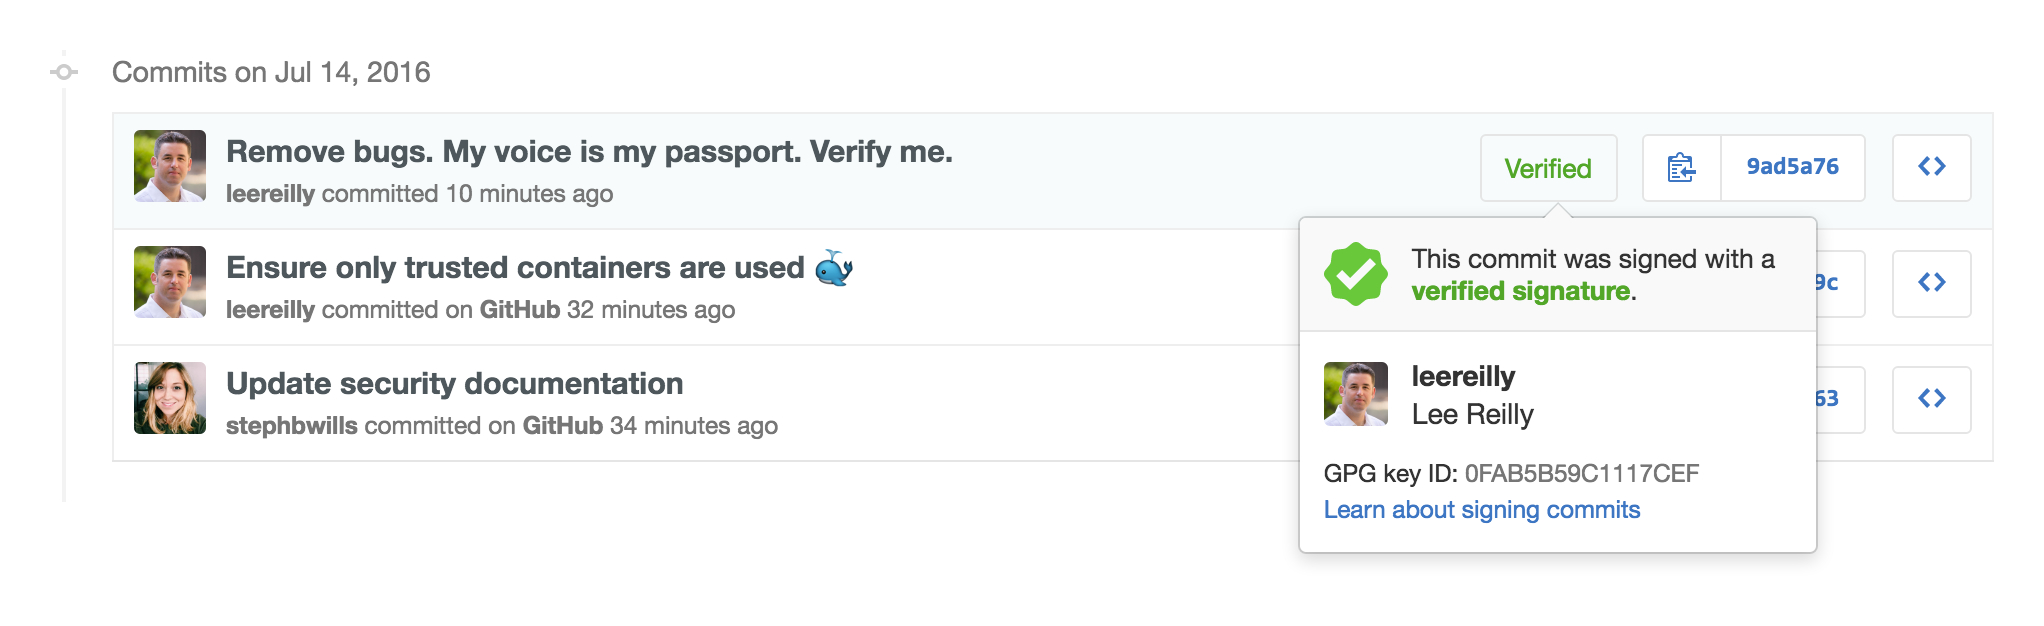 gpg sign your git commits on GitHub